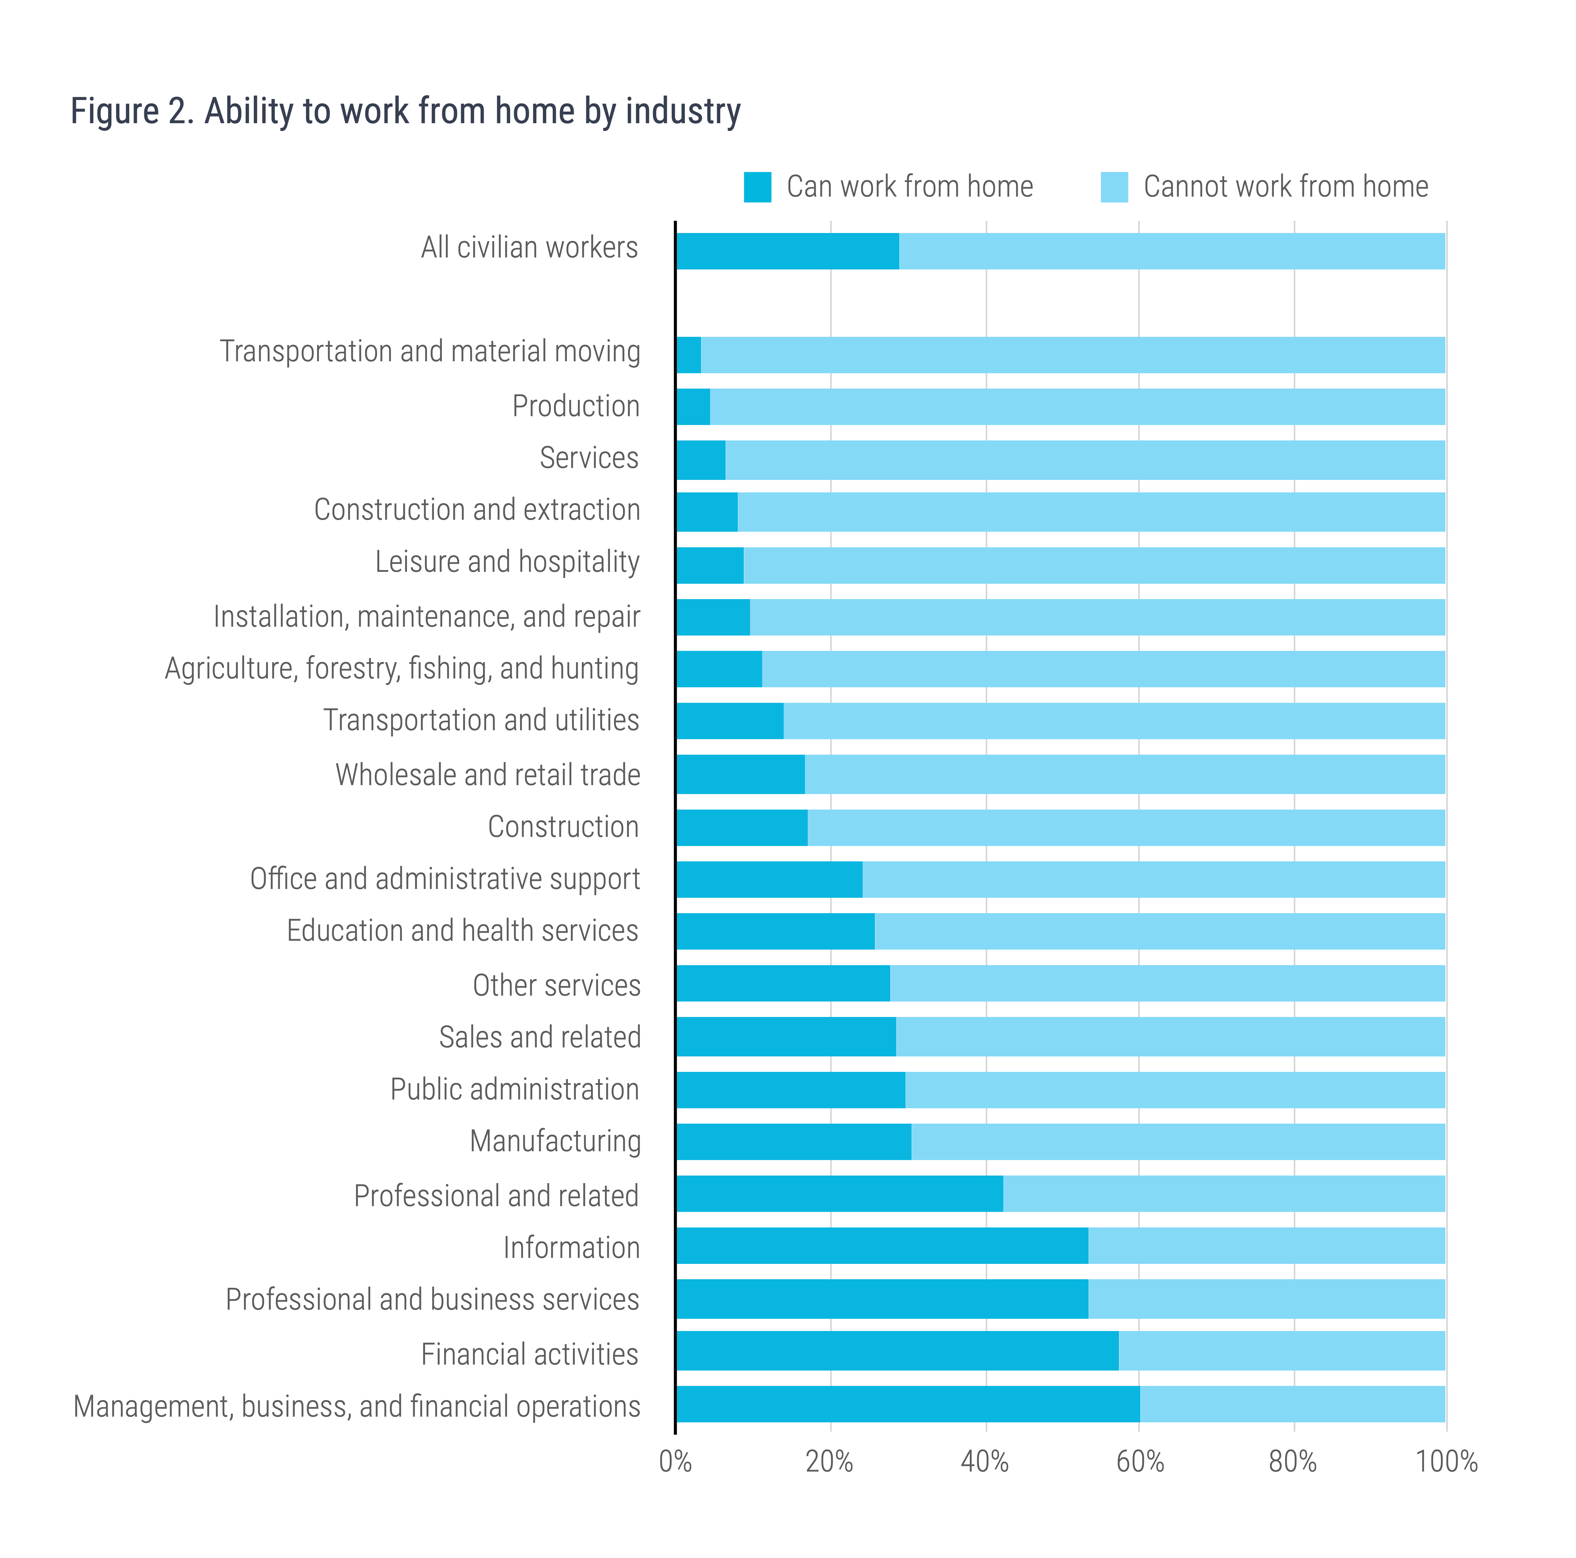 Figure 2. Ability to work from home by industry